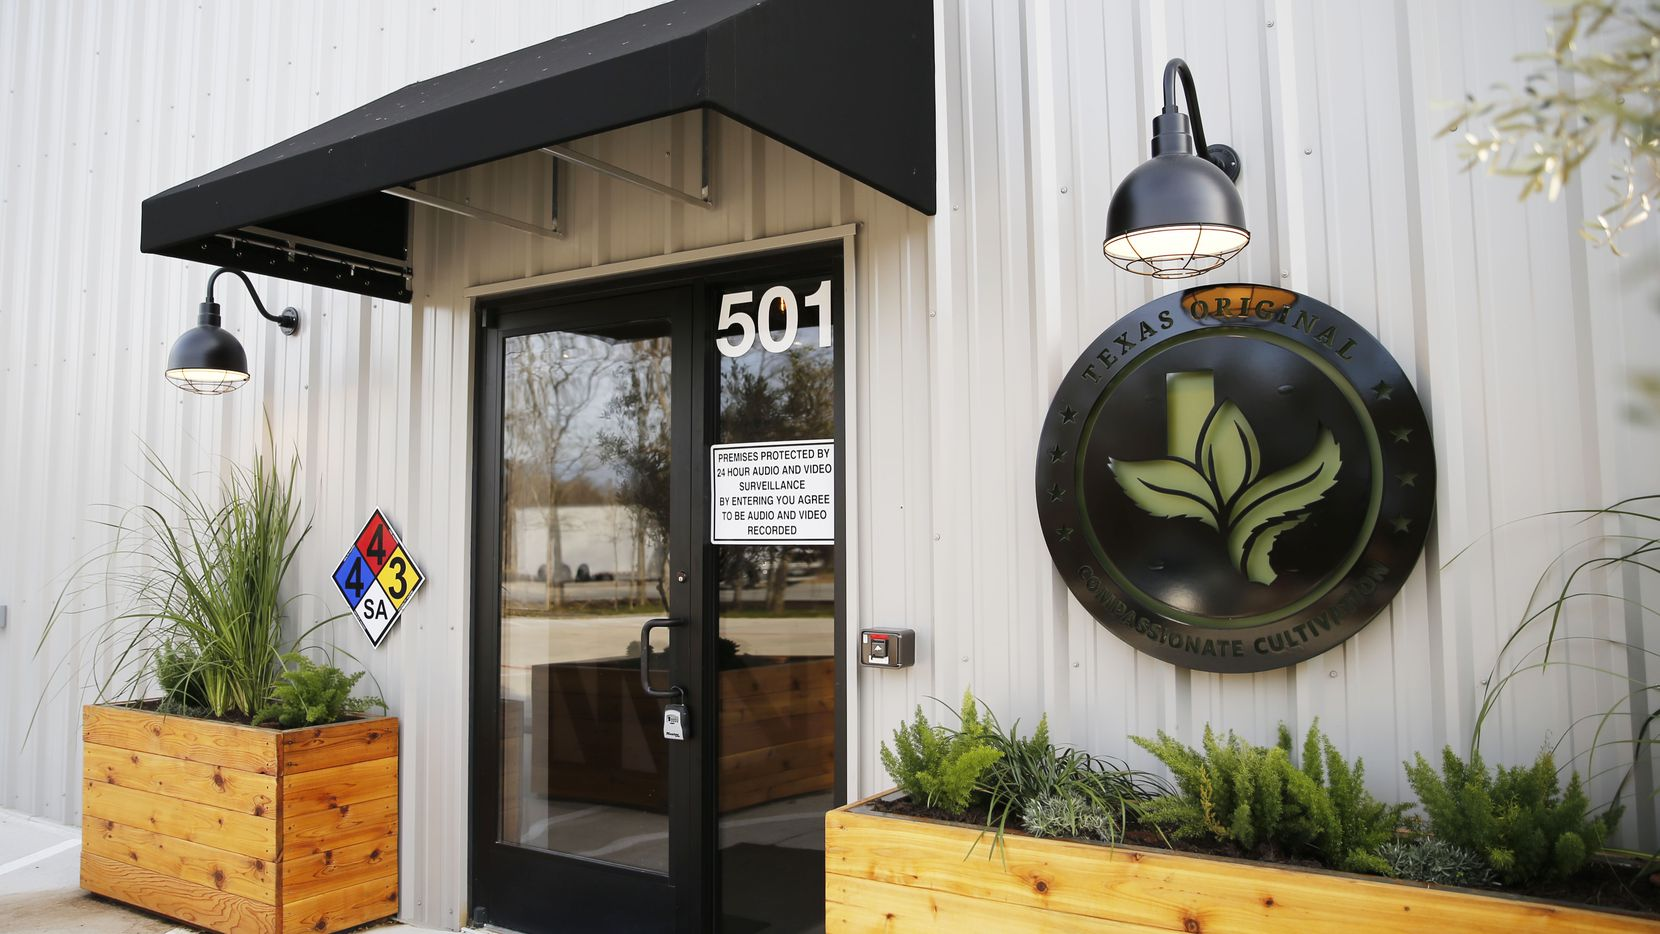 Texas' first cannabis dispensary has opened near Austin, but